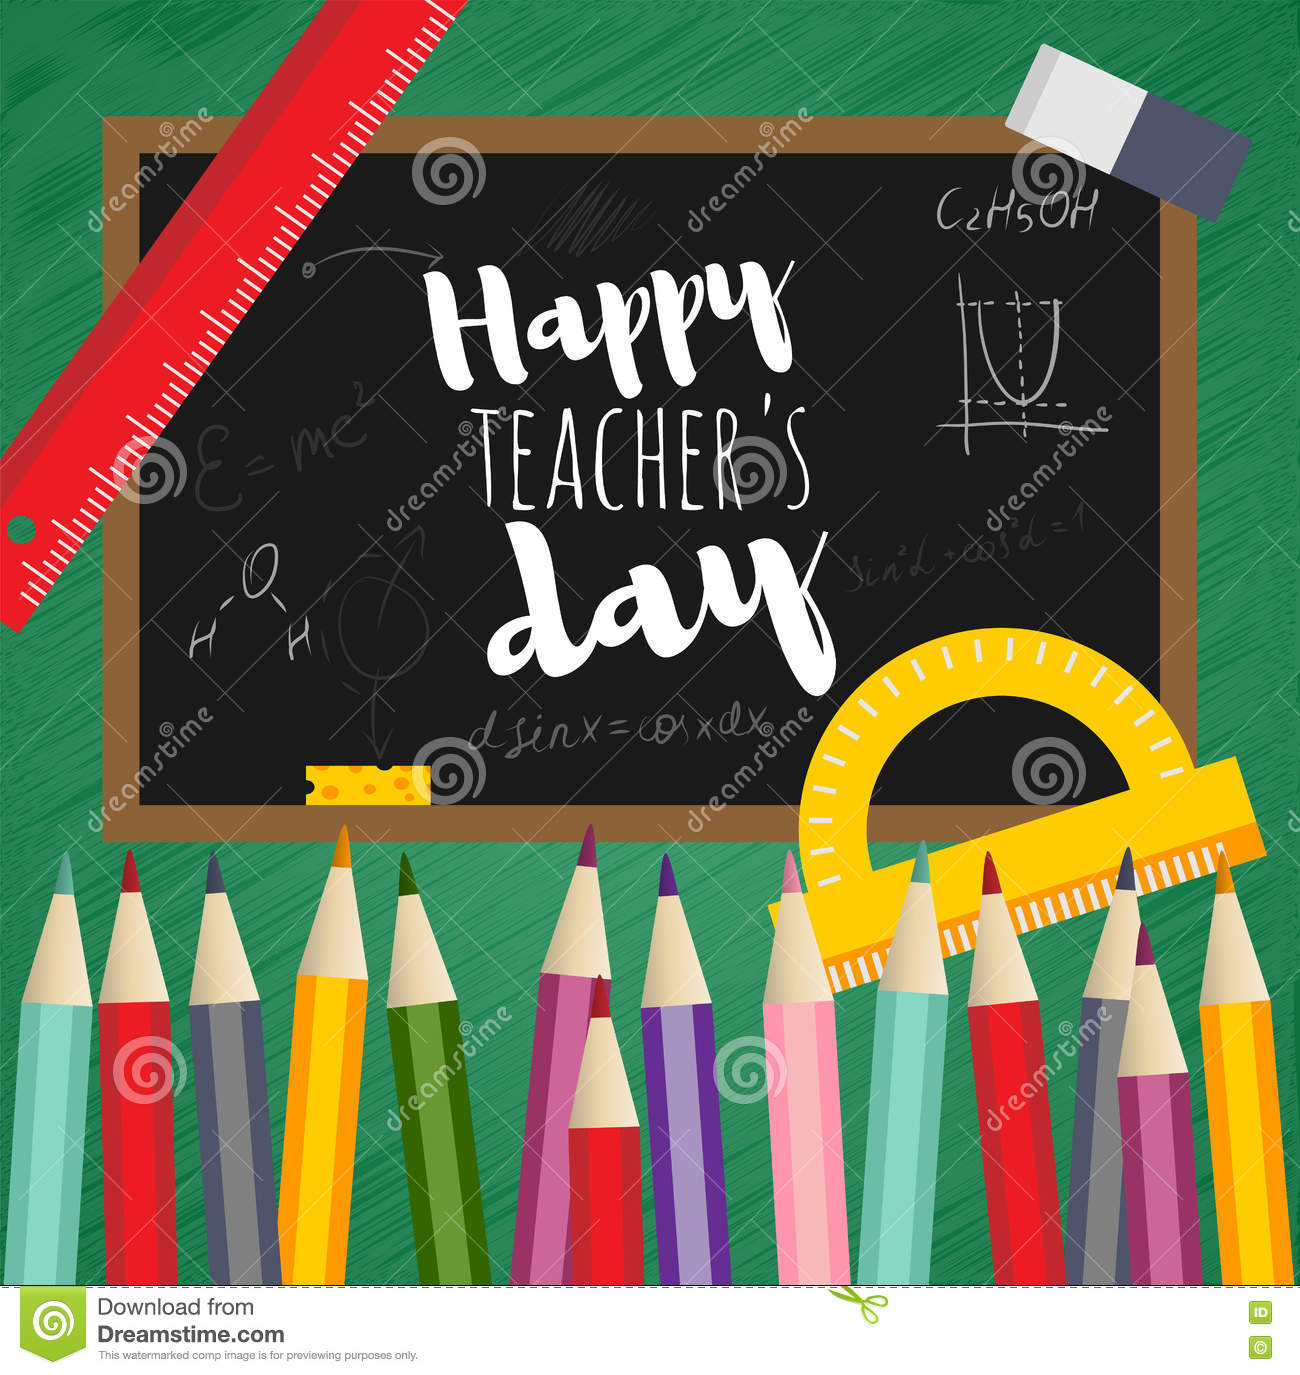 Greeting card happy teachers day stock vector illustration of greeting card happy teachers day m4hsunfo